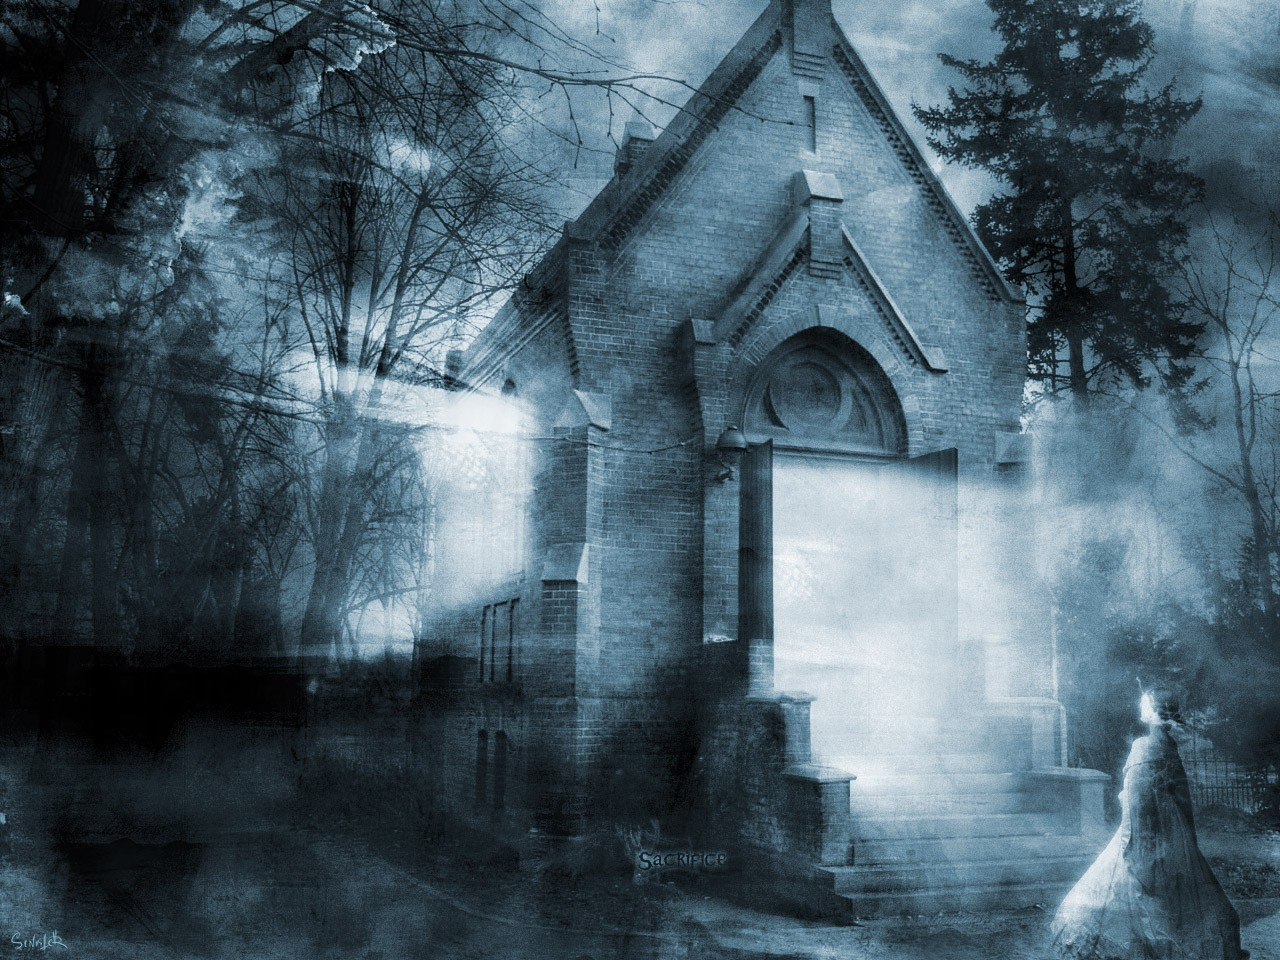 Haunted House wallpaper is a great wallpaper for your computer desktop 1280x960